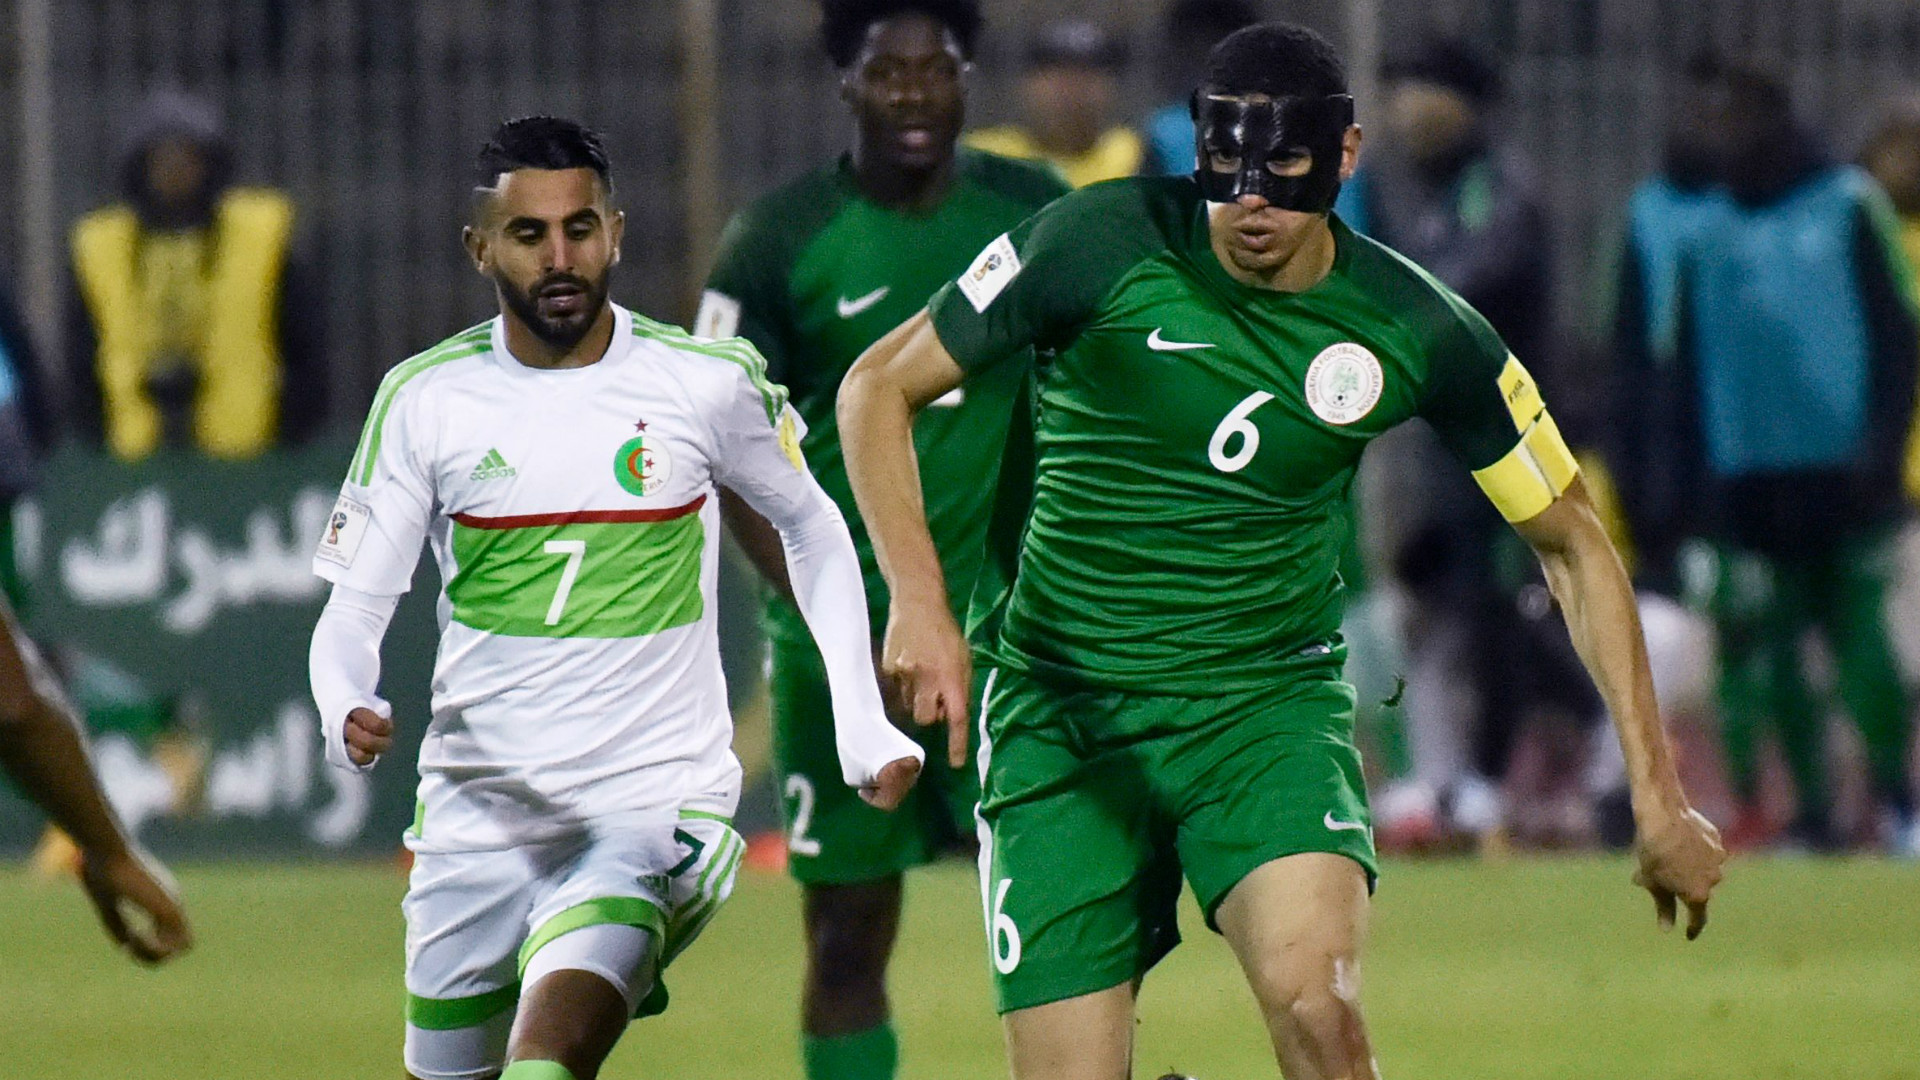 'We are Nigeria' - Twitter reacts to Super Eagles dismantling of Argentina